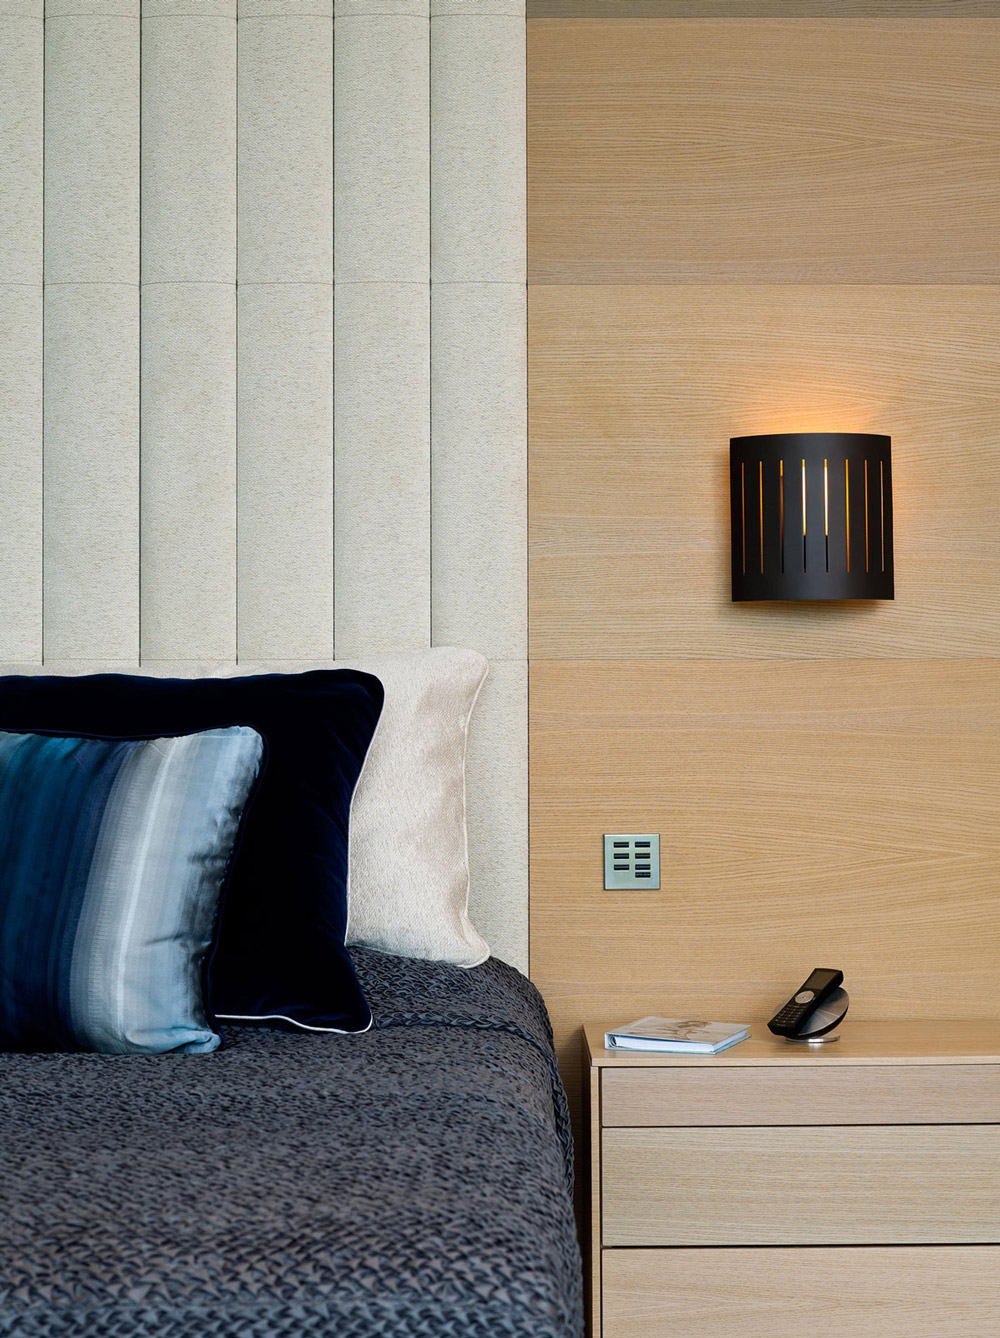 Bedroom Detail, Family Home in Portugal